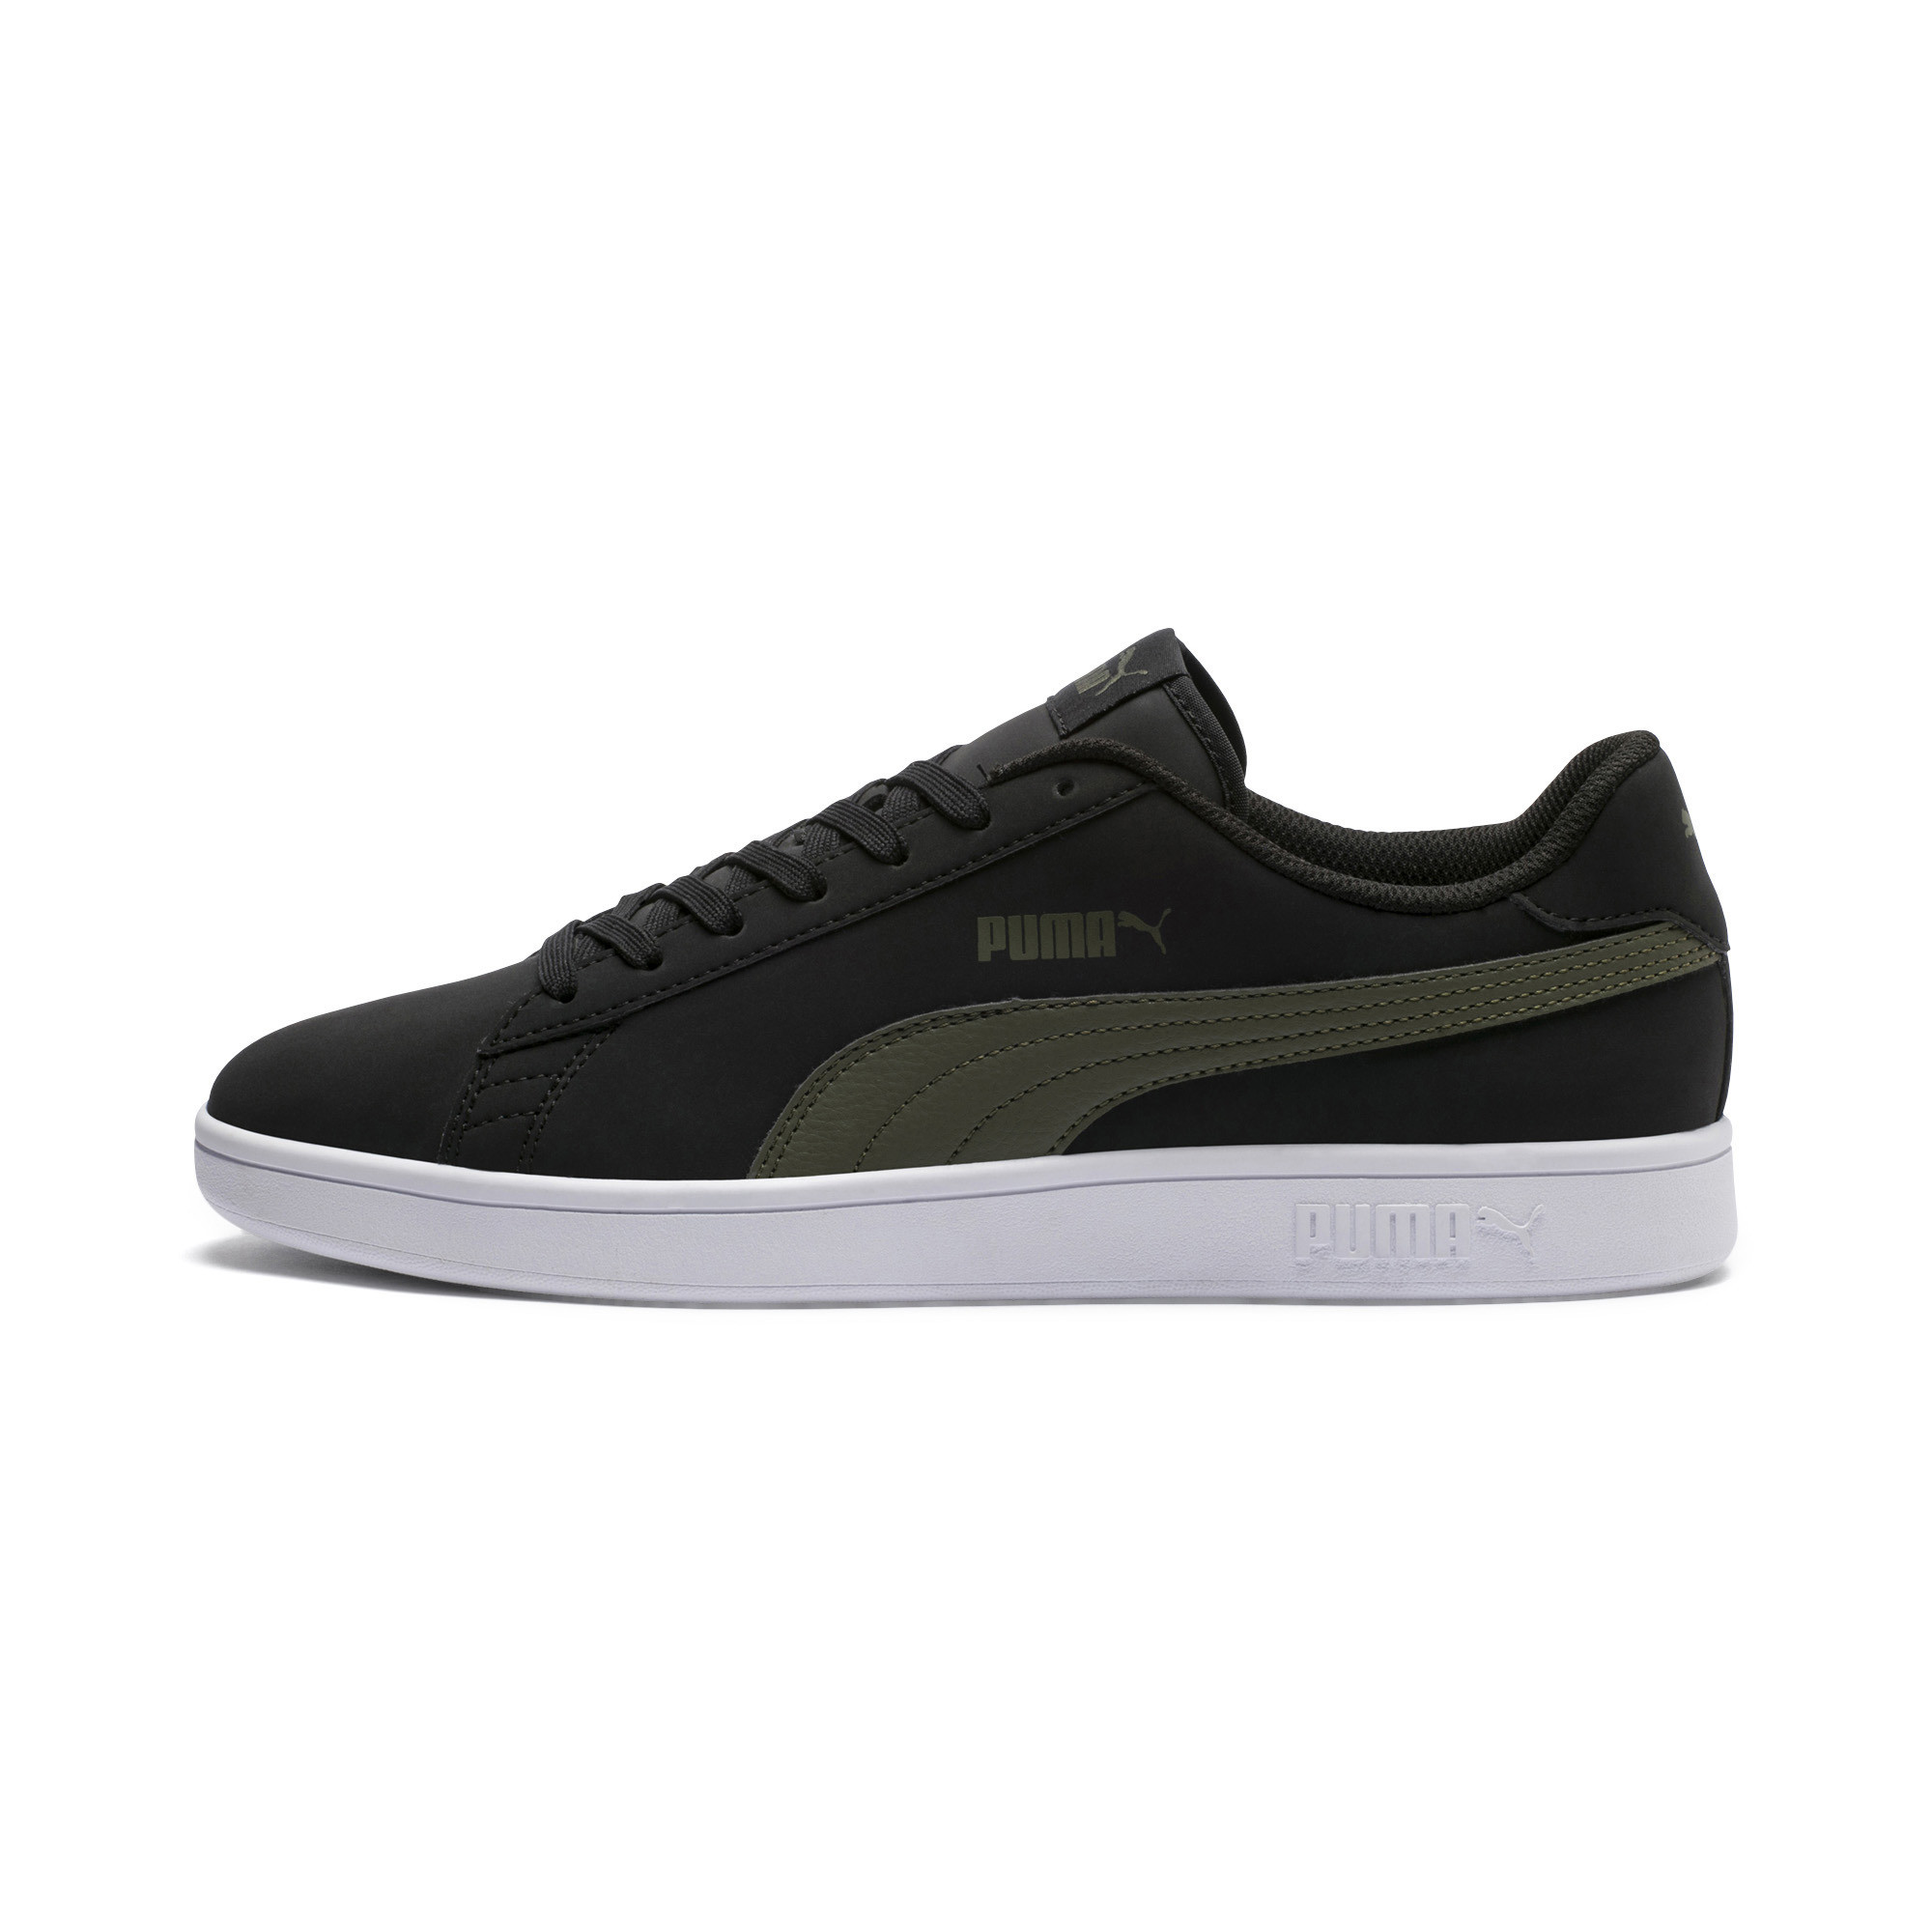 PUMA-PUMA-Smash-v2-Nubuck-Men-039-s-Sneakers-Men-Shoe-Basics thumbnail 4